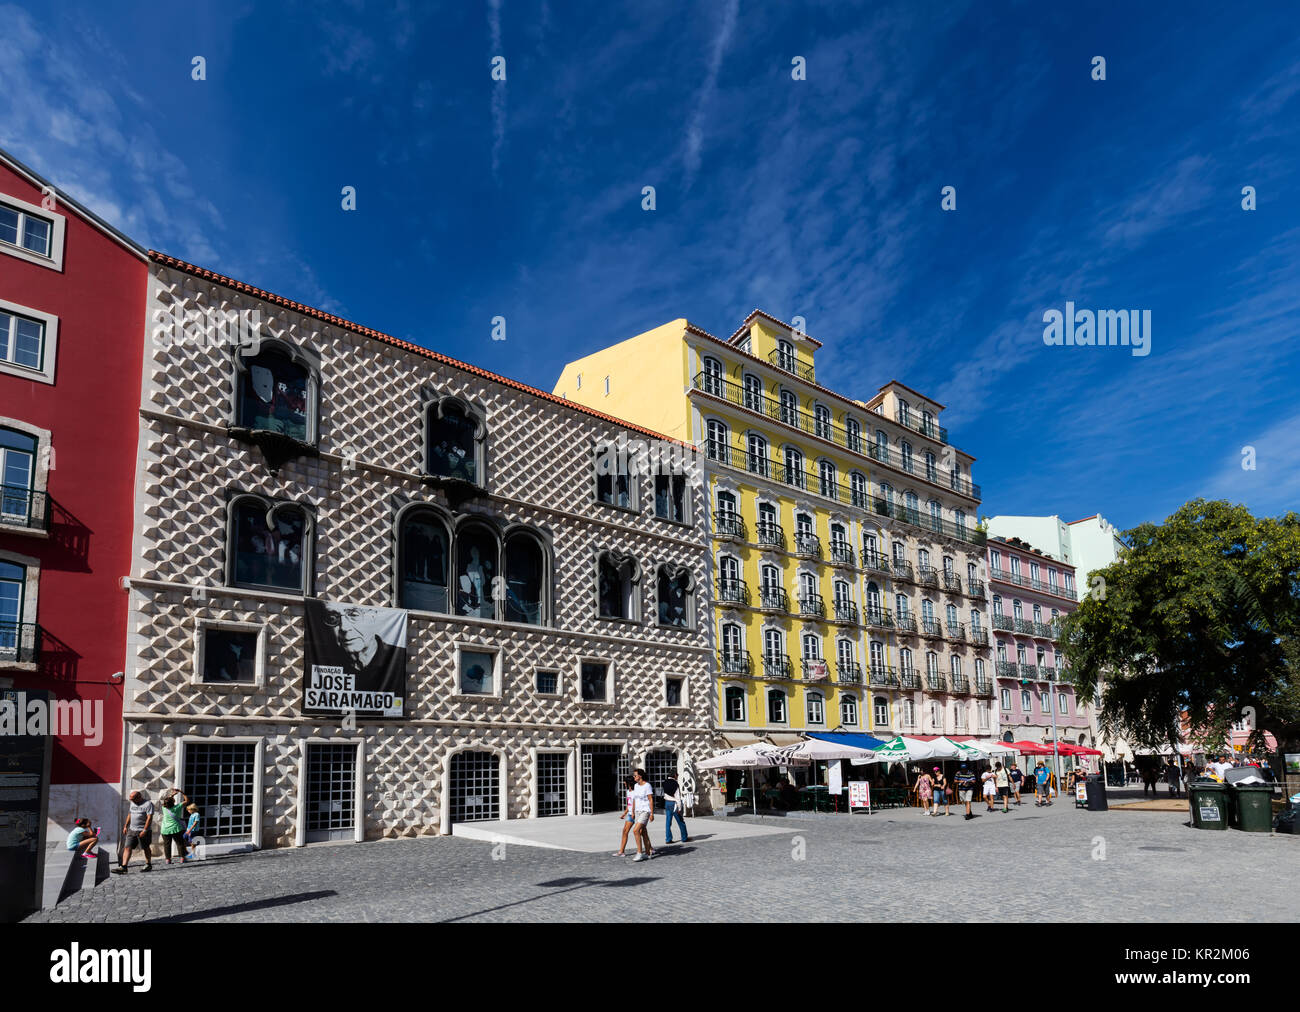 Lisbon, Portugal, August 7, 2017: Casa dos Bicos, a historical house, built in the early 16th century with a spiked - Stock Image